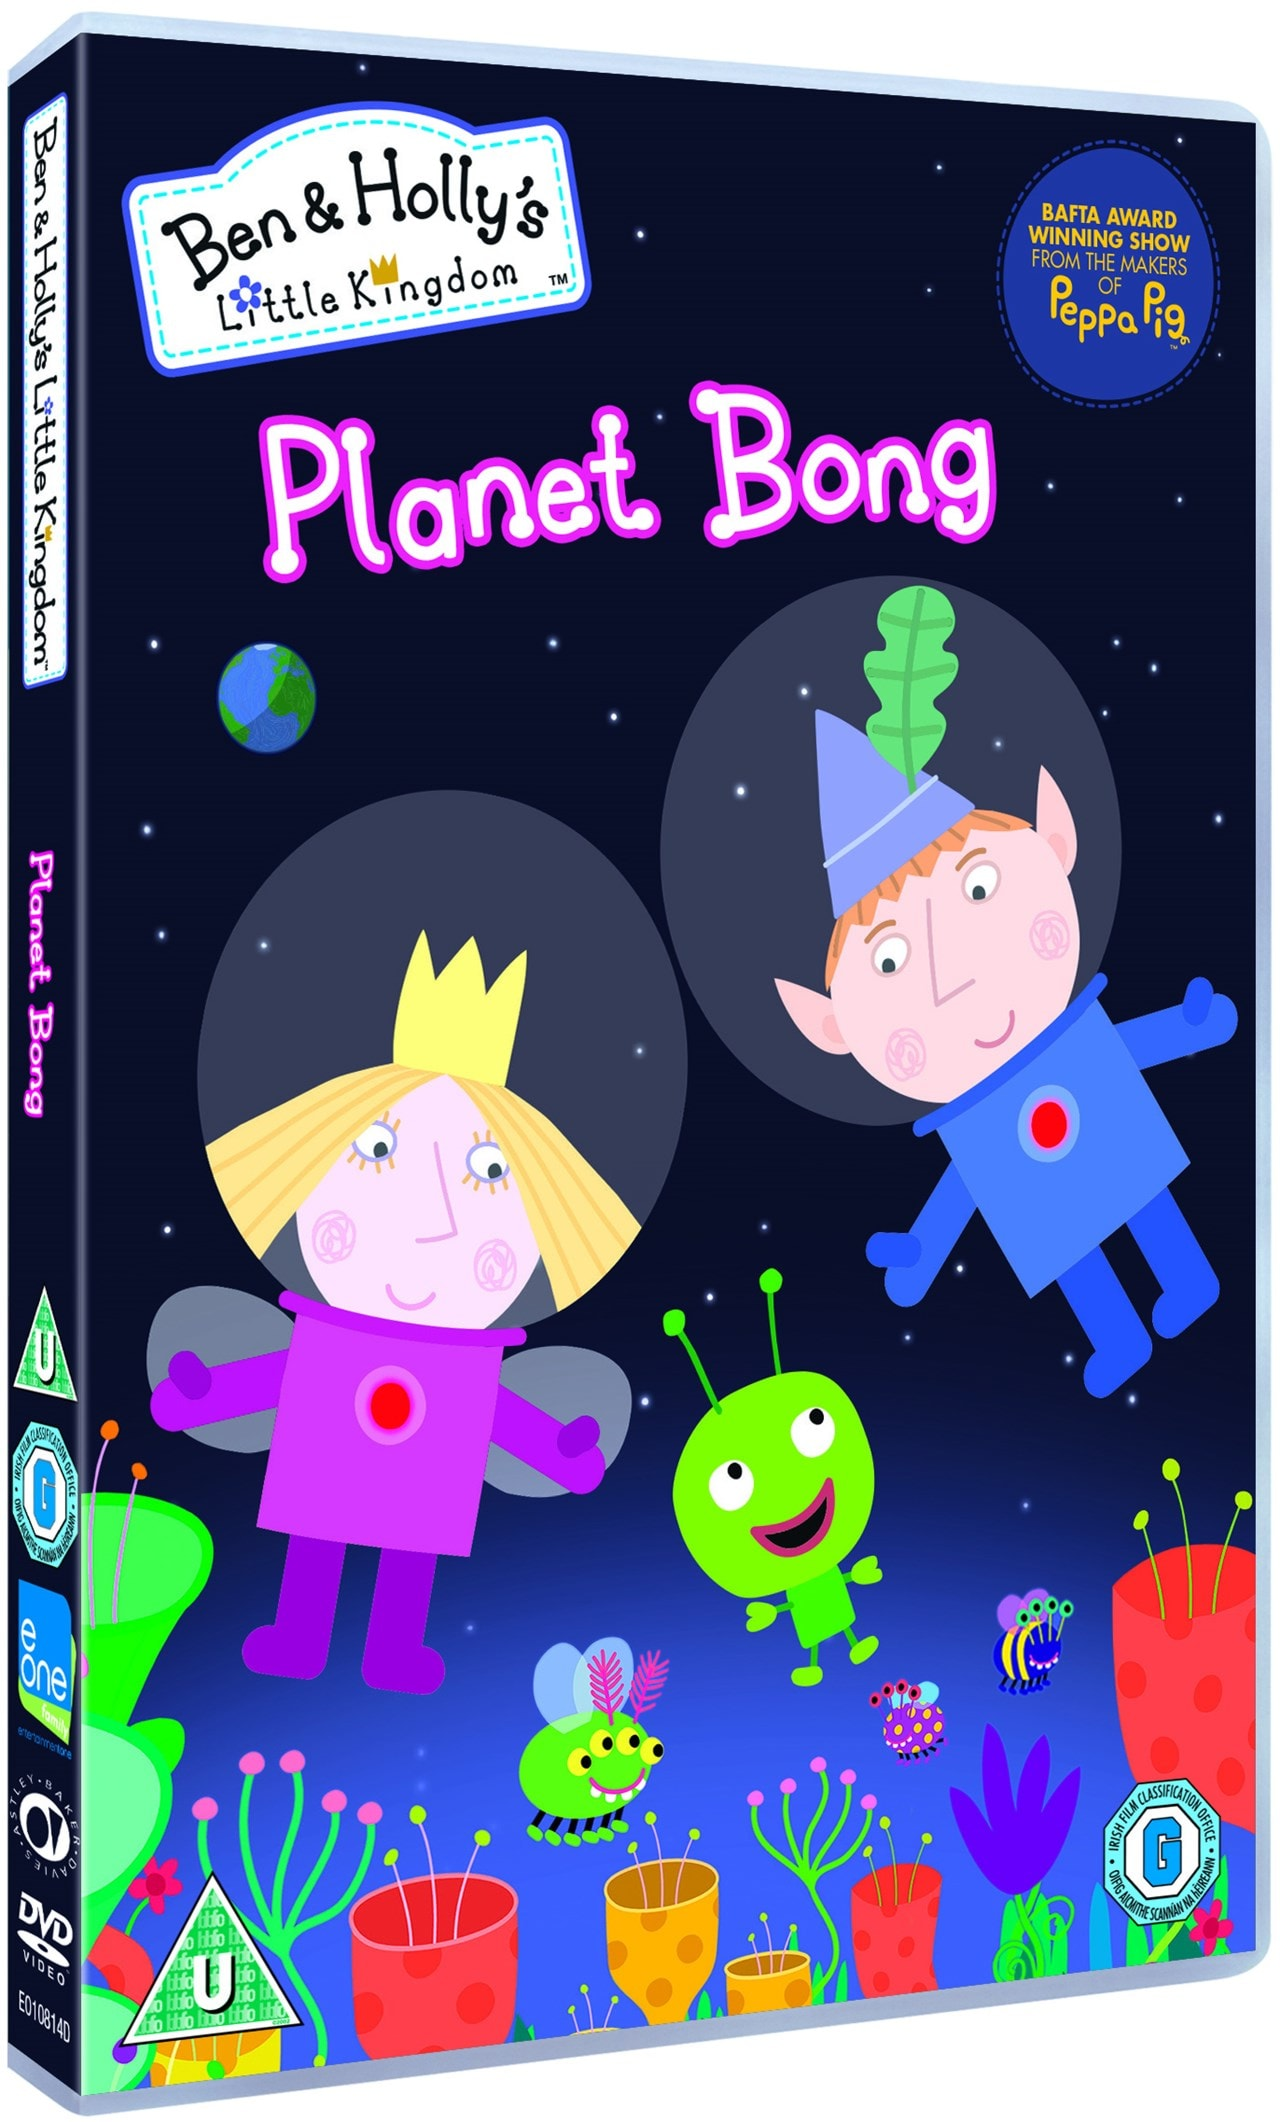 Ben and Holly's Little Kingdom: Planet Bong - 2